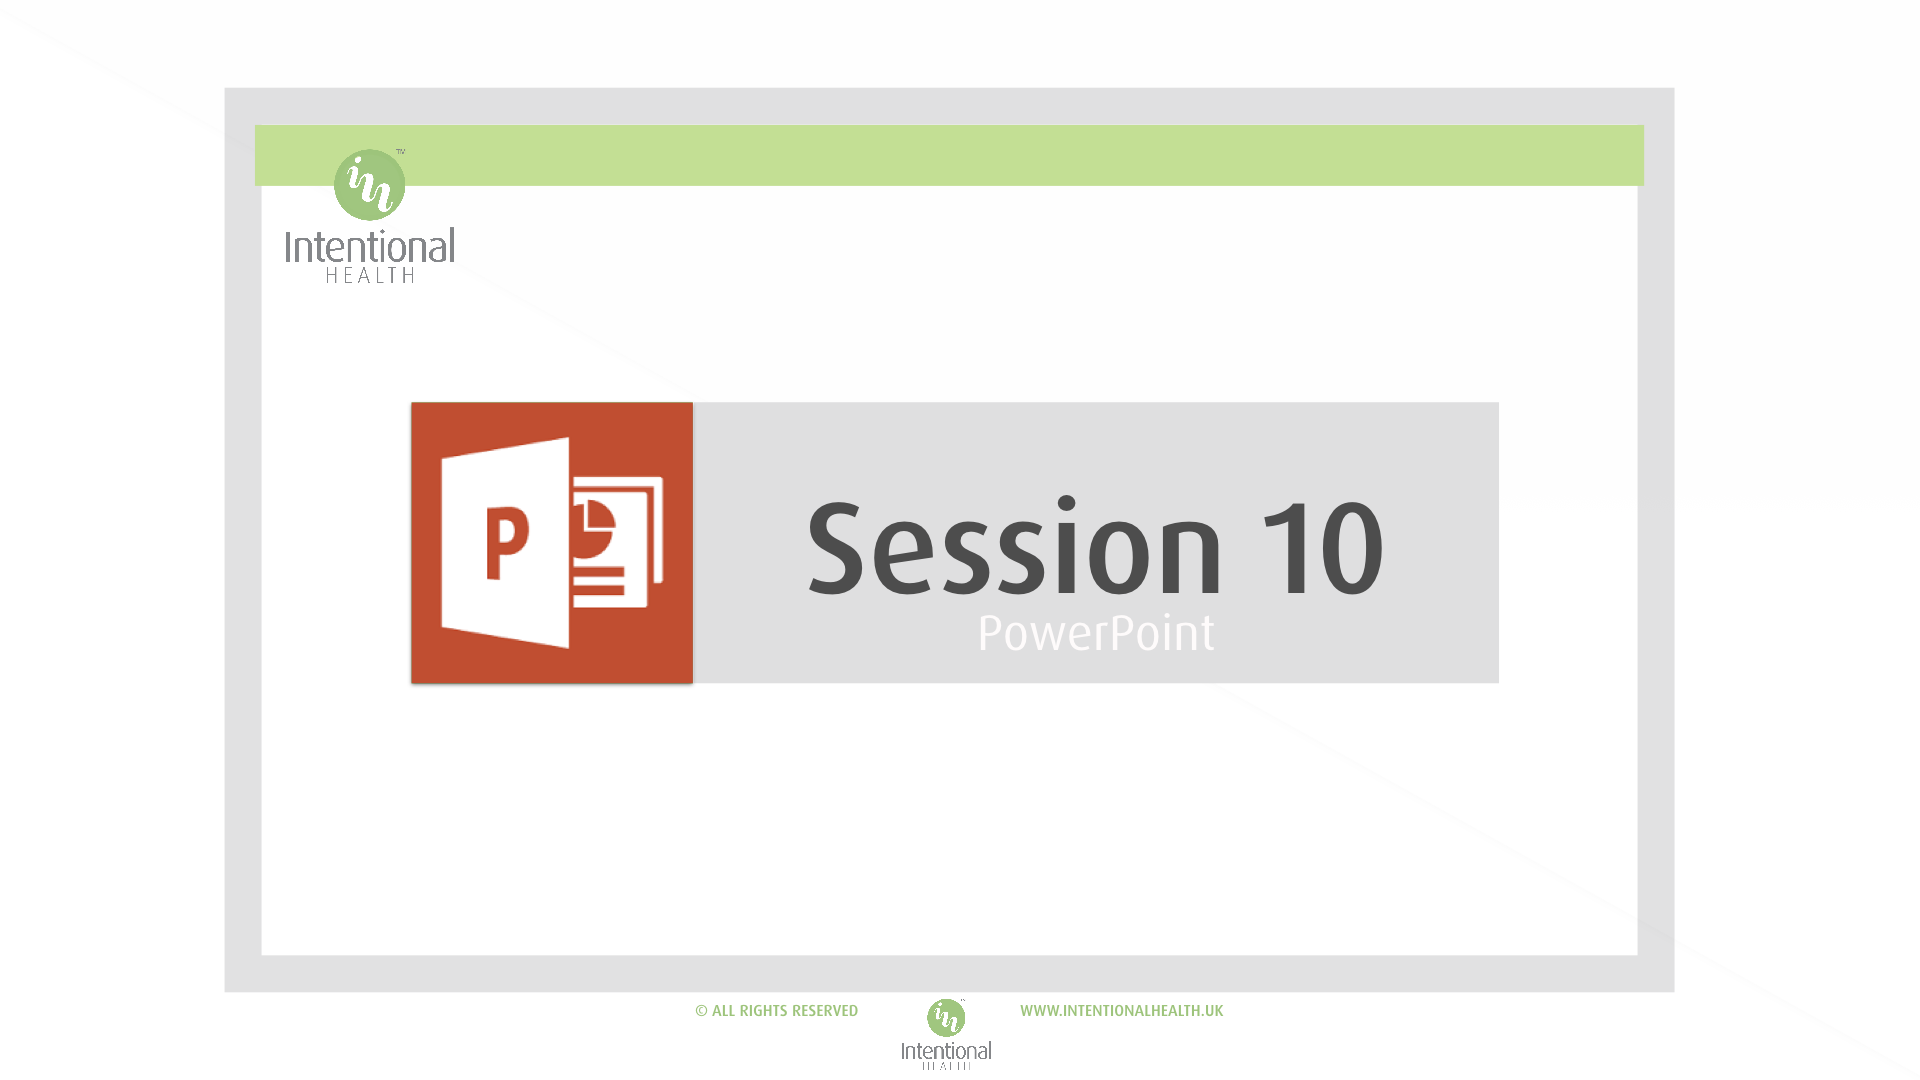 Session 10 Powerpoint